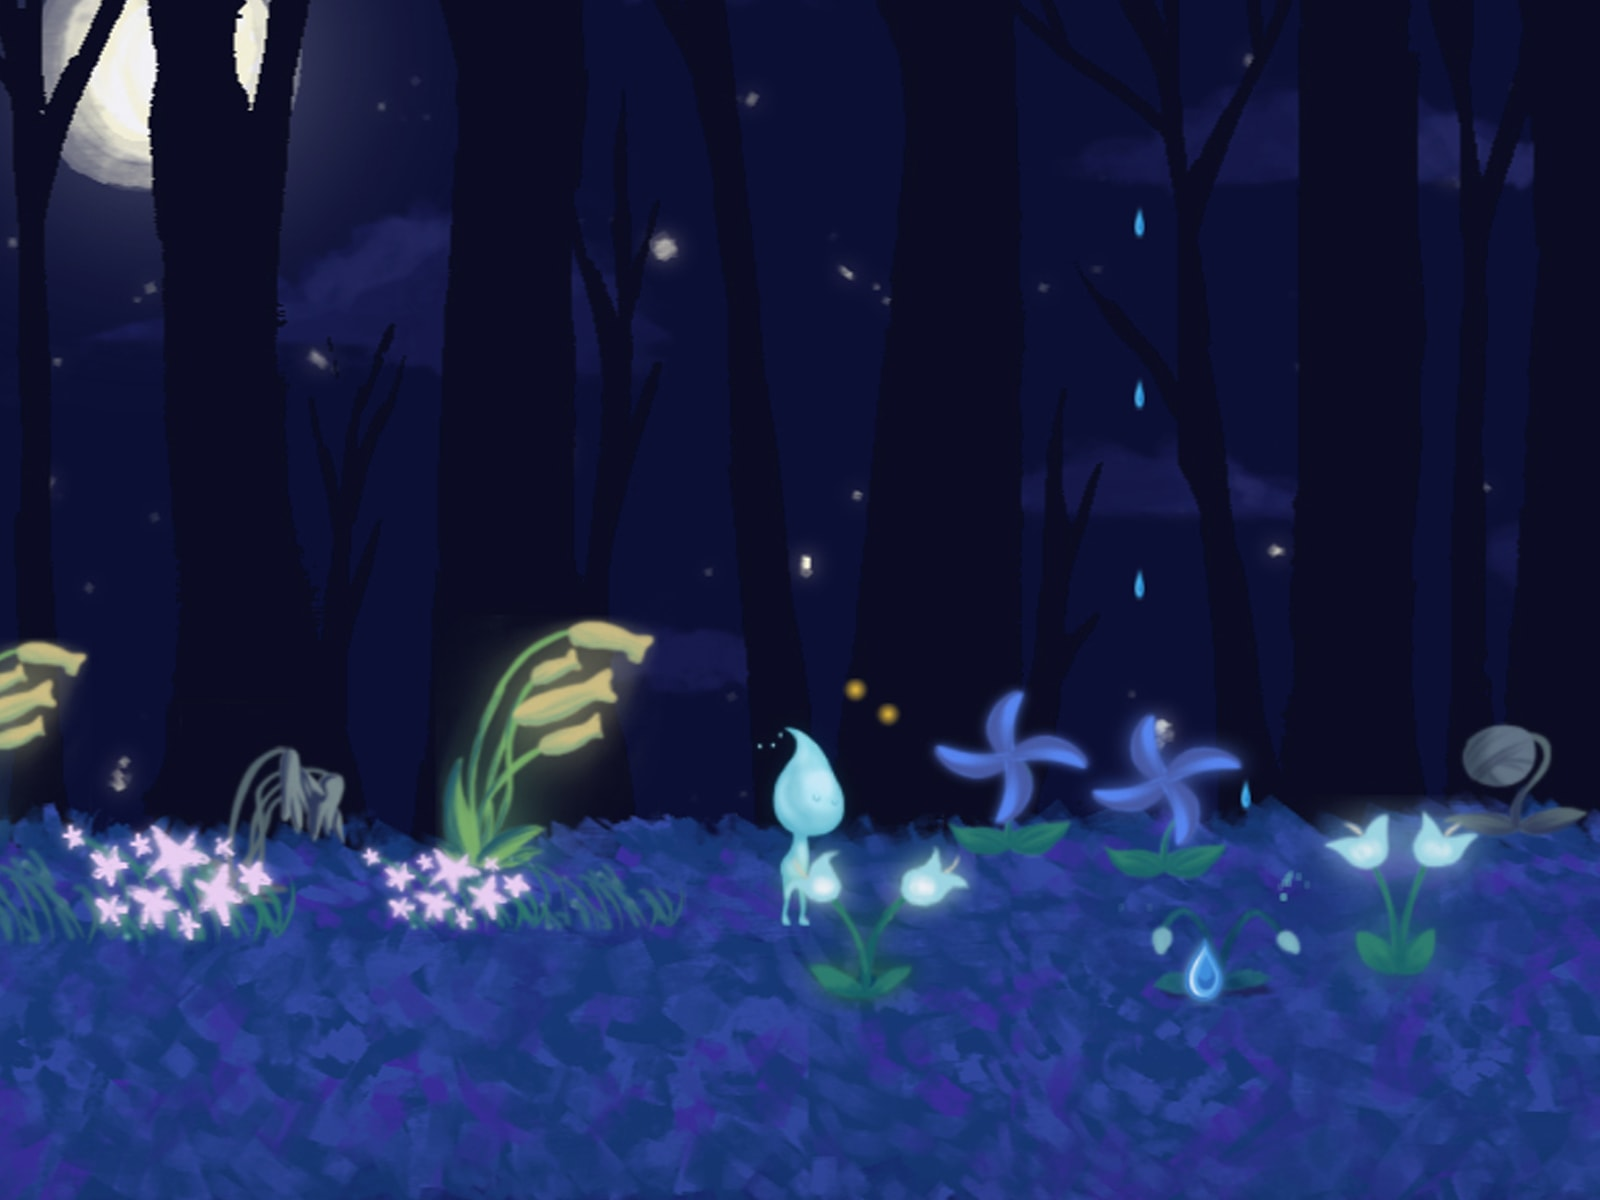 Screenshot from DigiPen student game Douse of a rain sprite with a water-droplet-shaped head with flowers in a dark forest